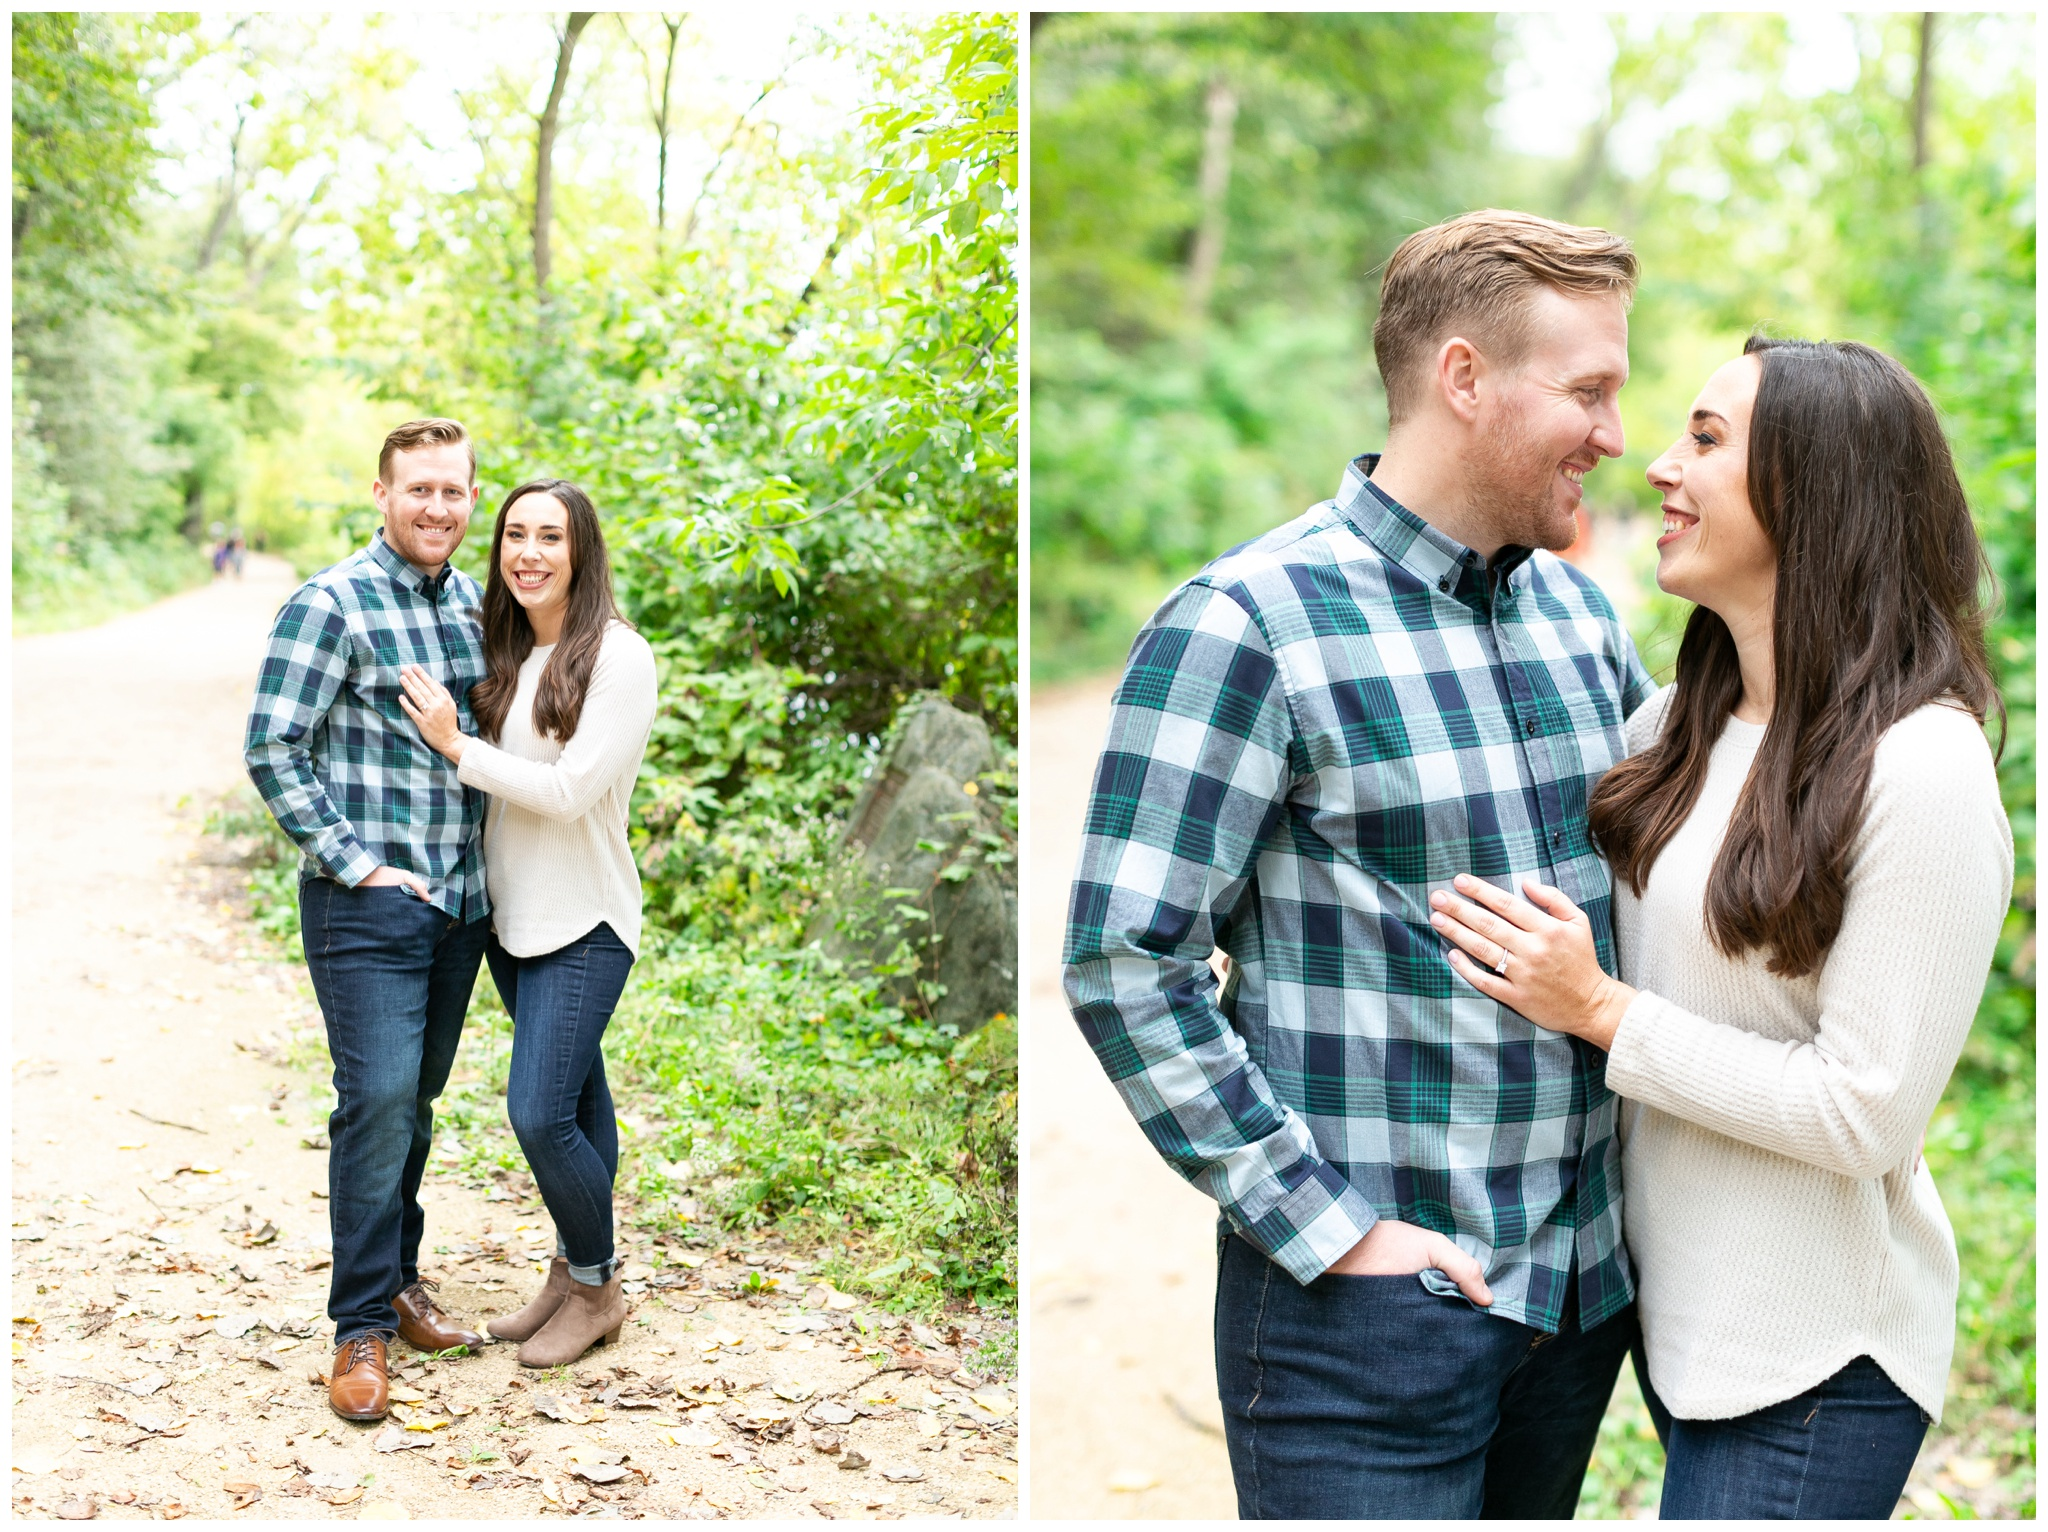 memorial_union_engagement_session_madison_wisconsin_1640.jpg